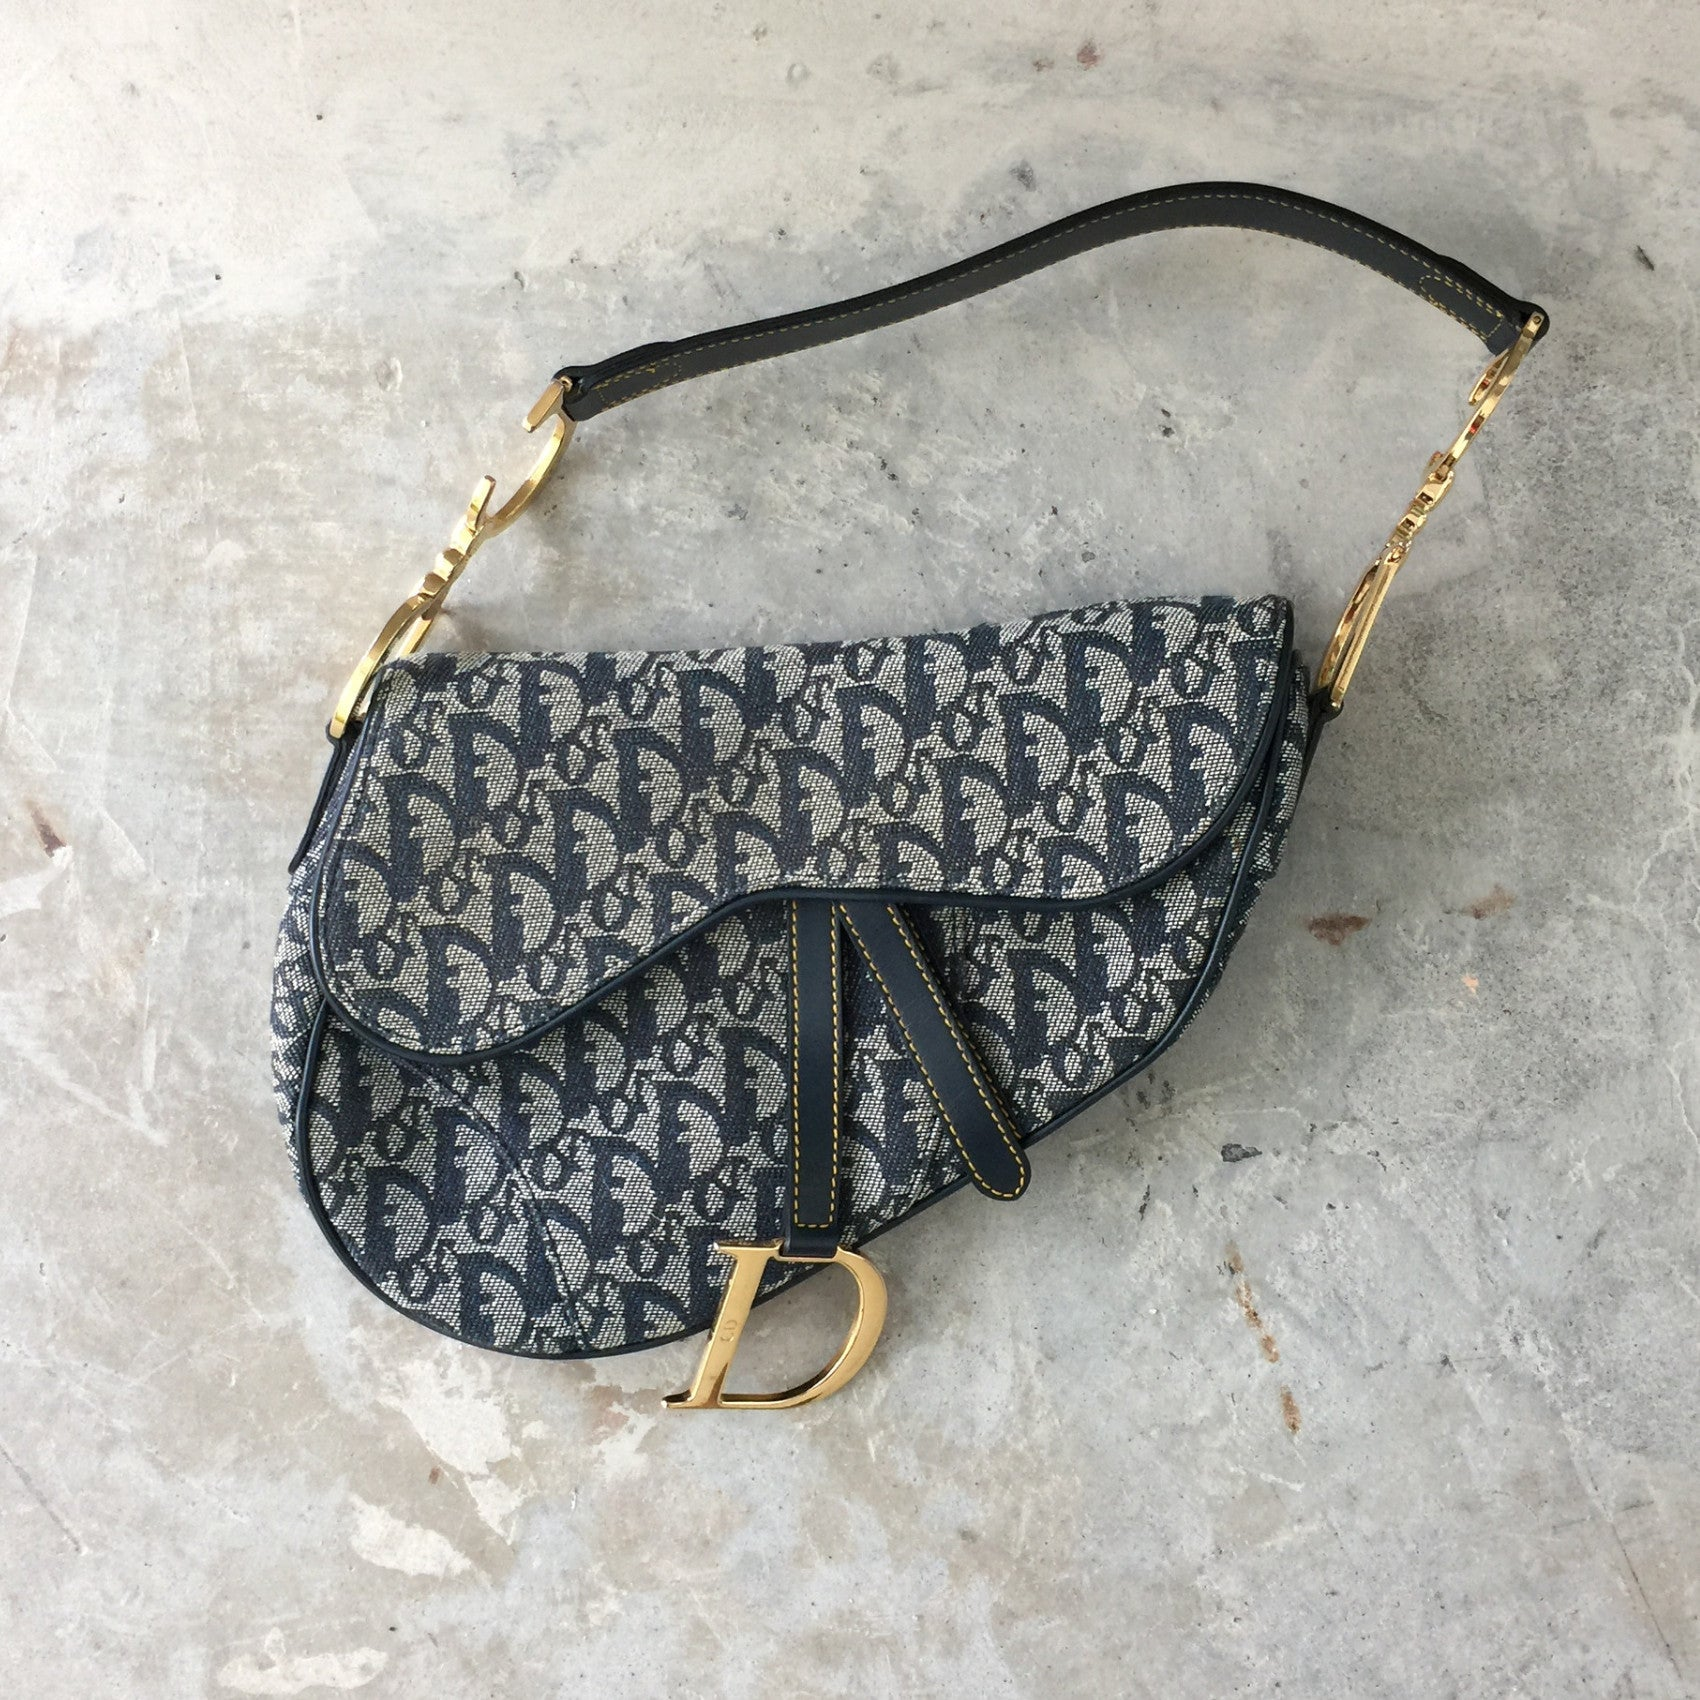 Authentic CHRISTIAN DIOR Saddle Bag